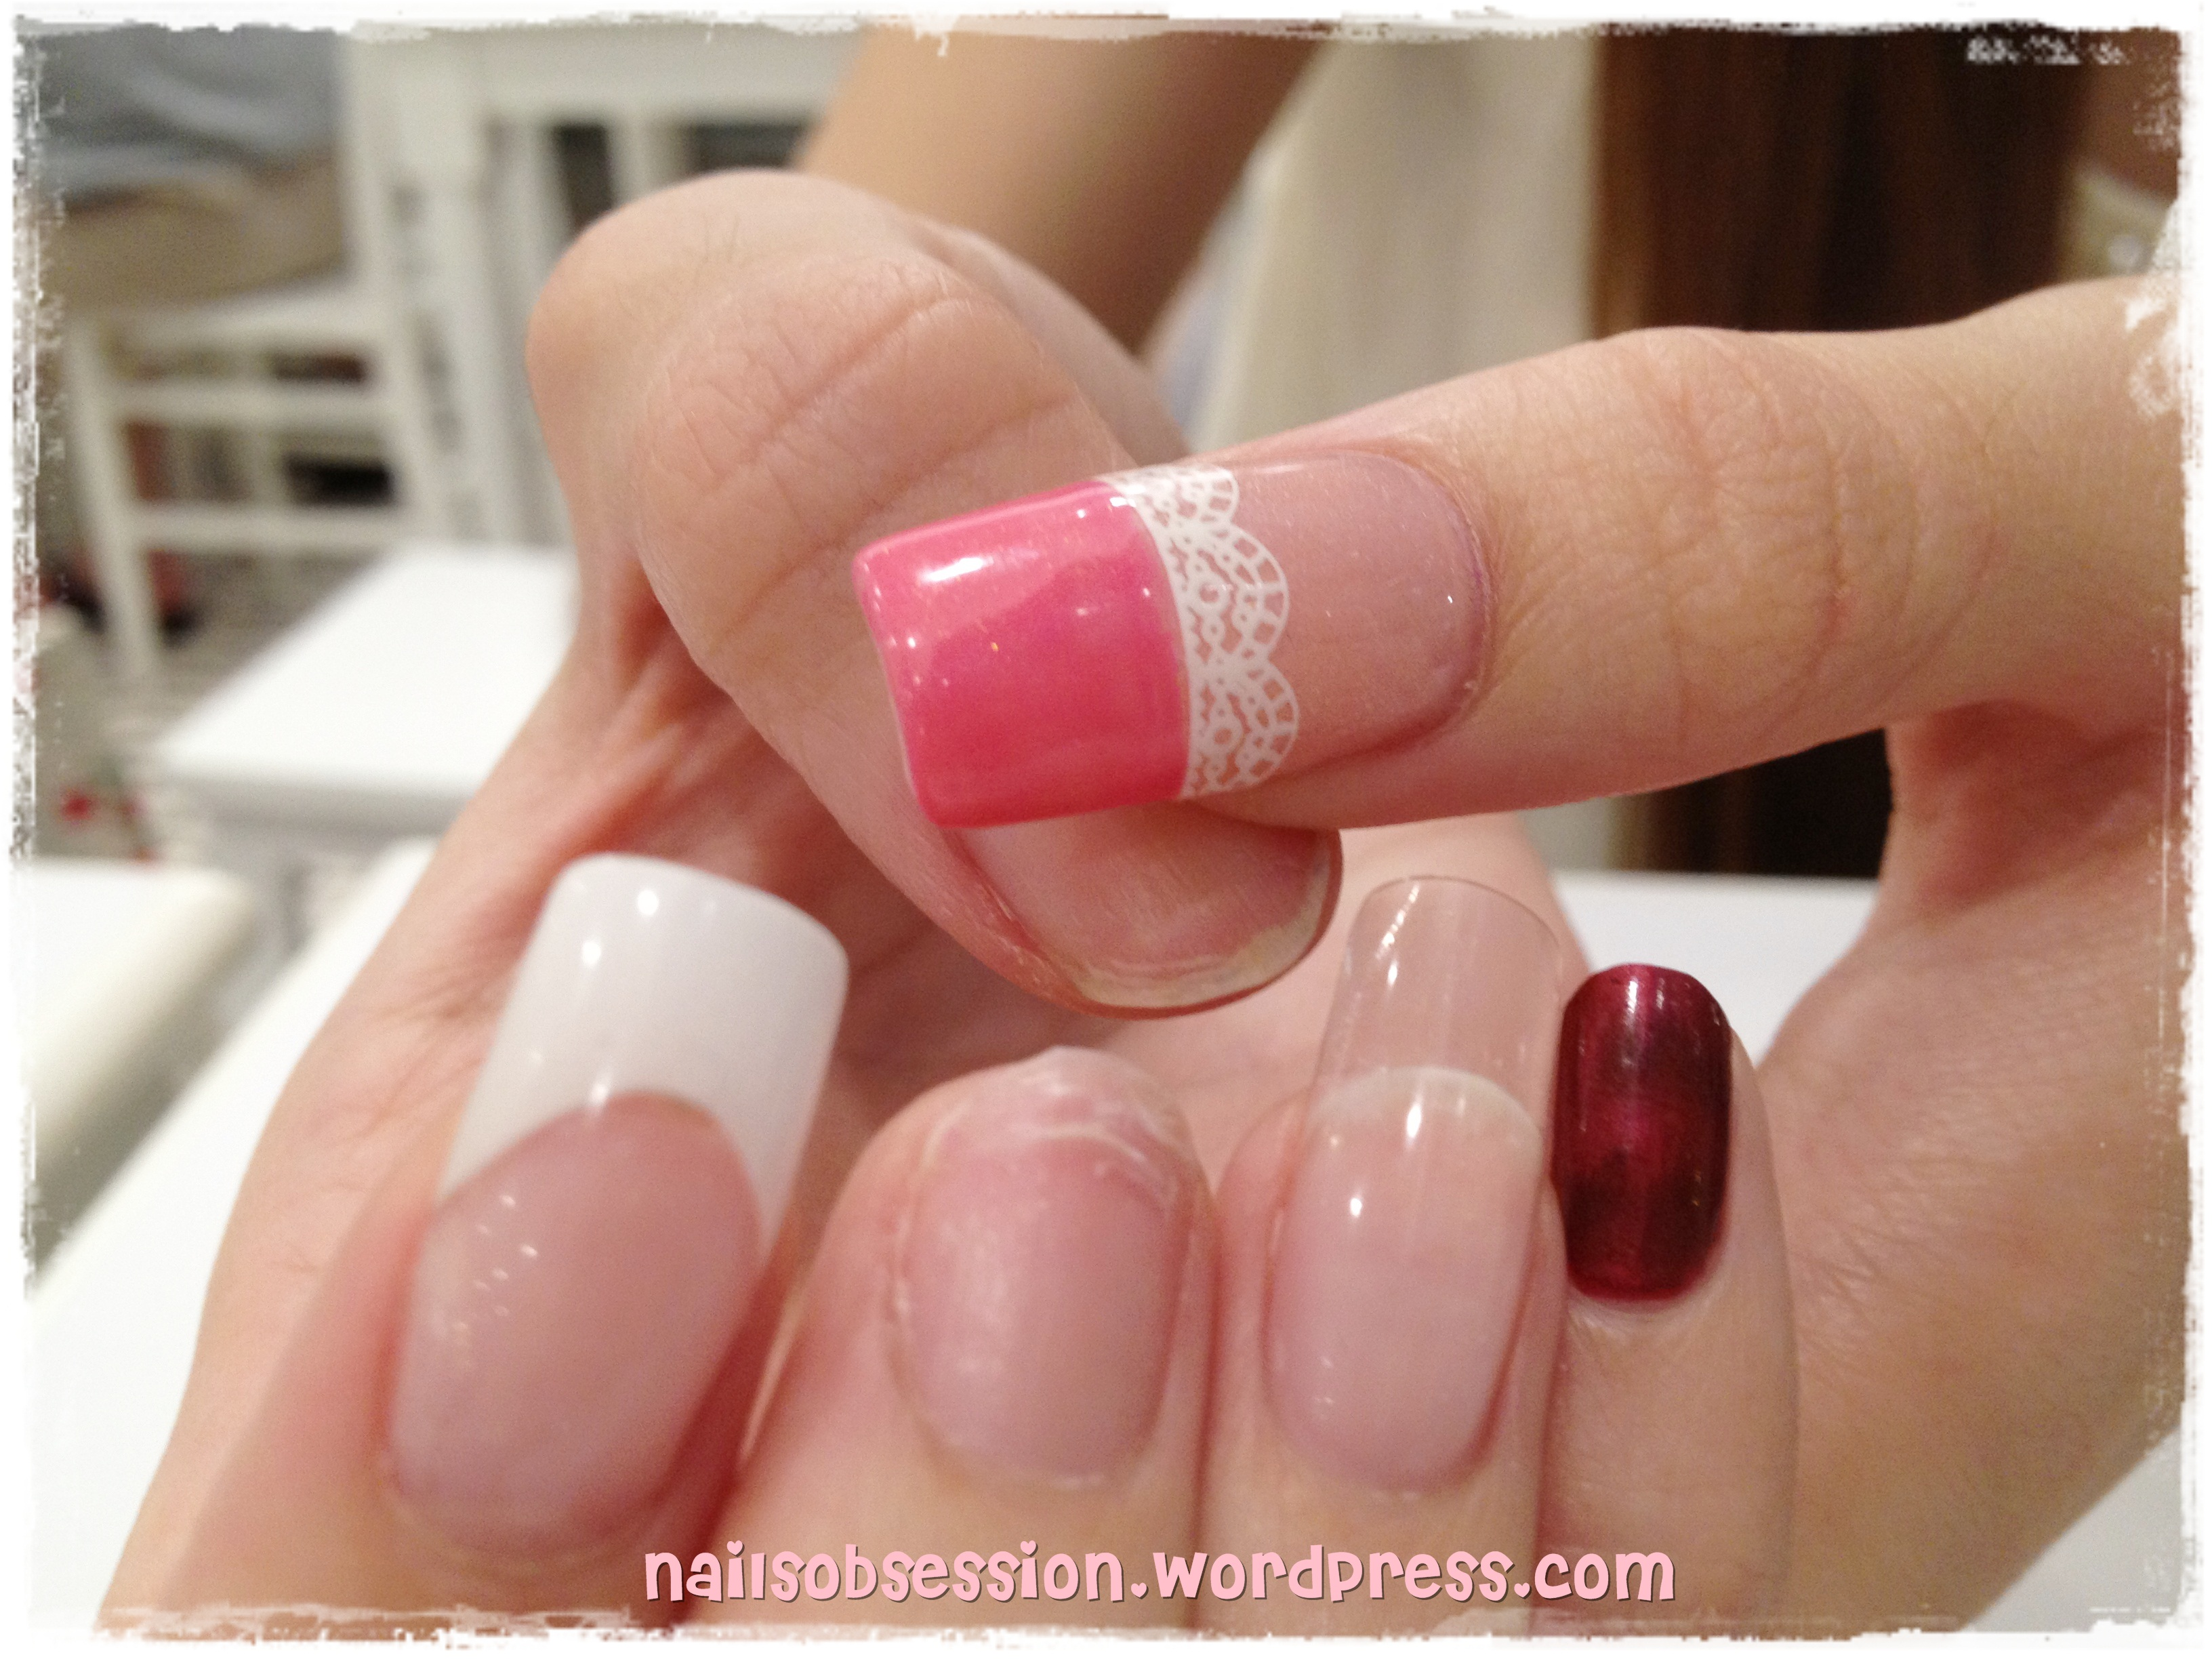 air files for acrylic nails photo - 2